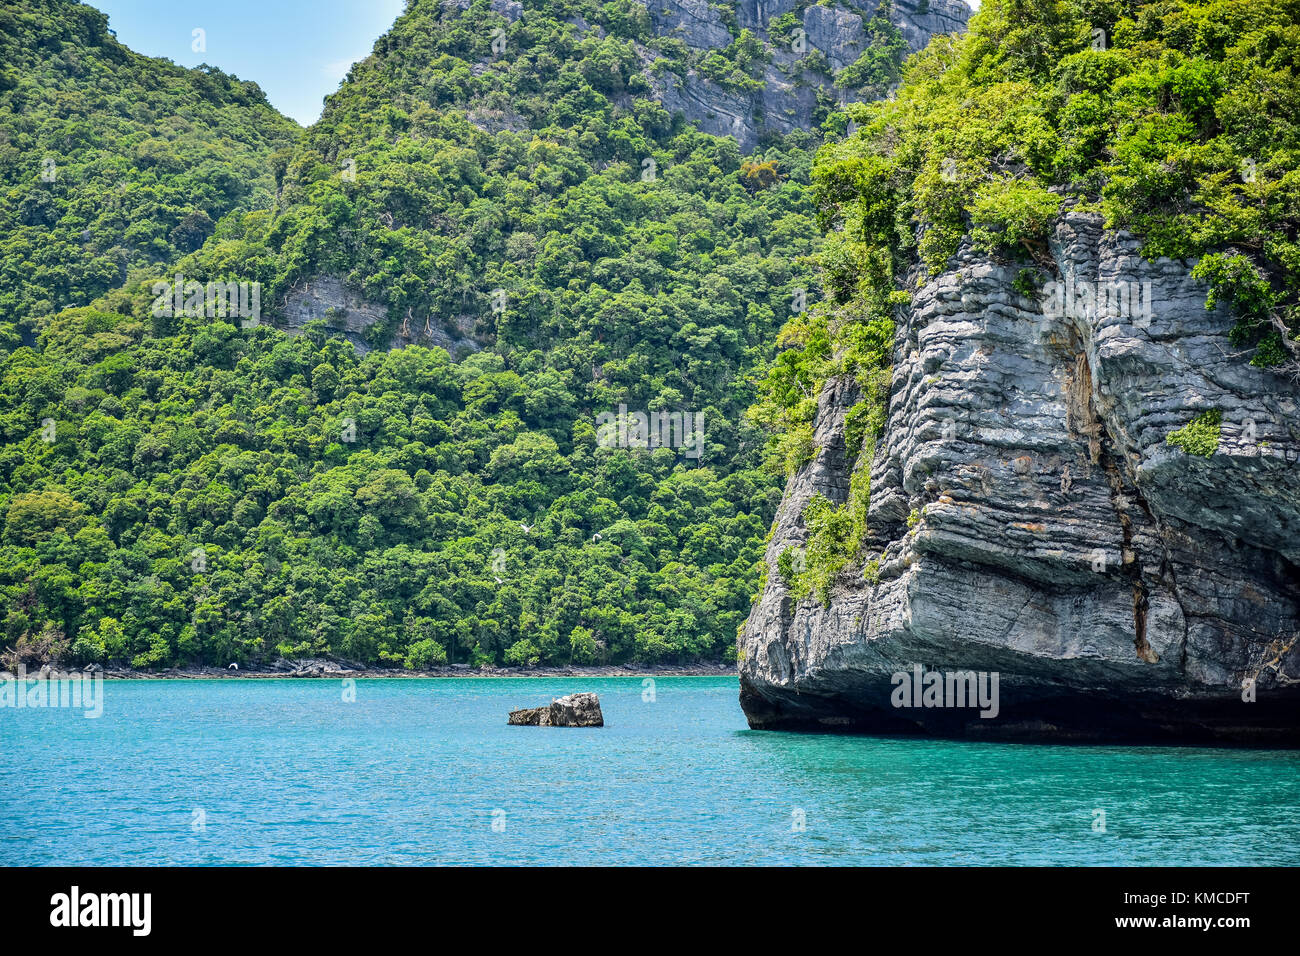 Beautiful seascape of Thailand sea and island of Samui, one of the most famous tourist vacation destination - Stock Image